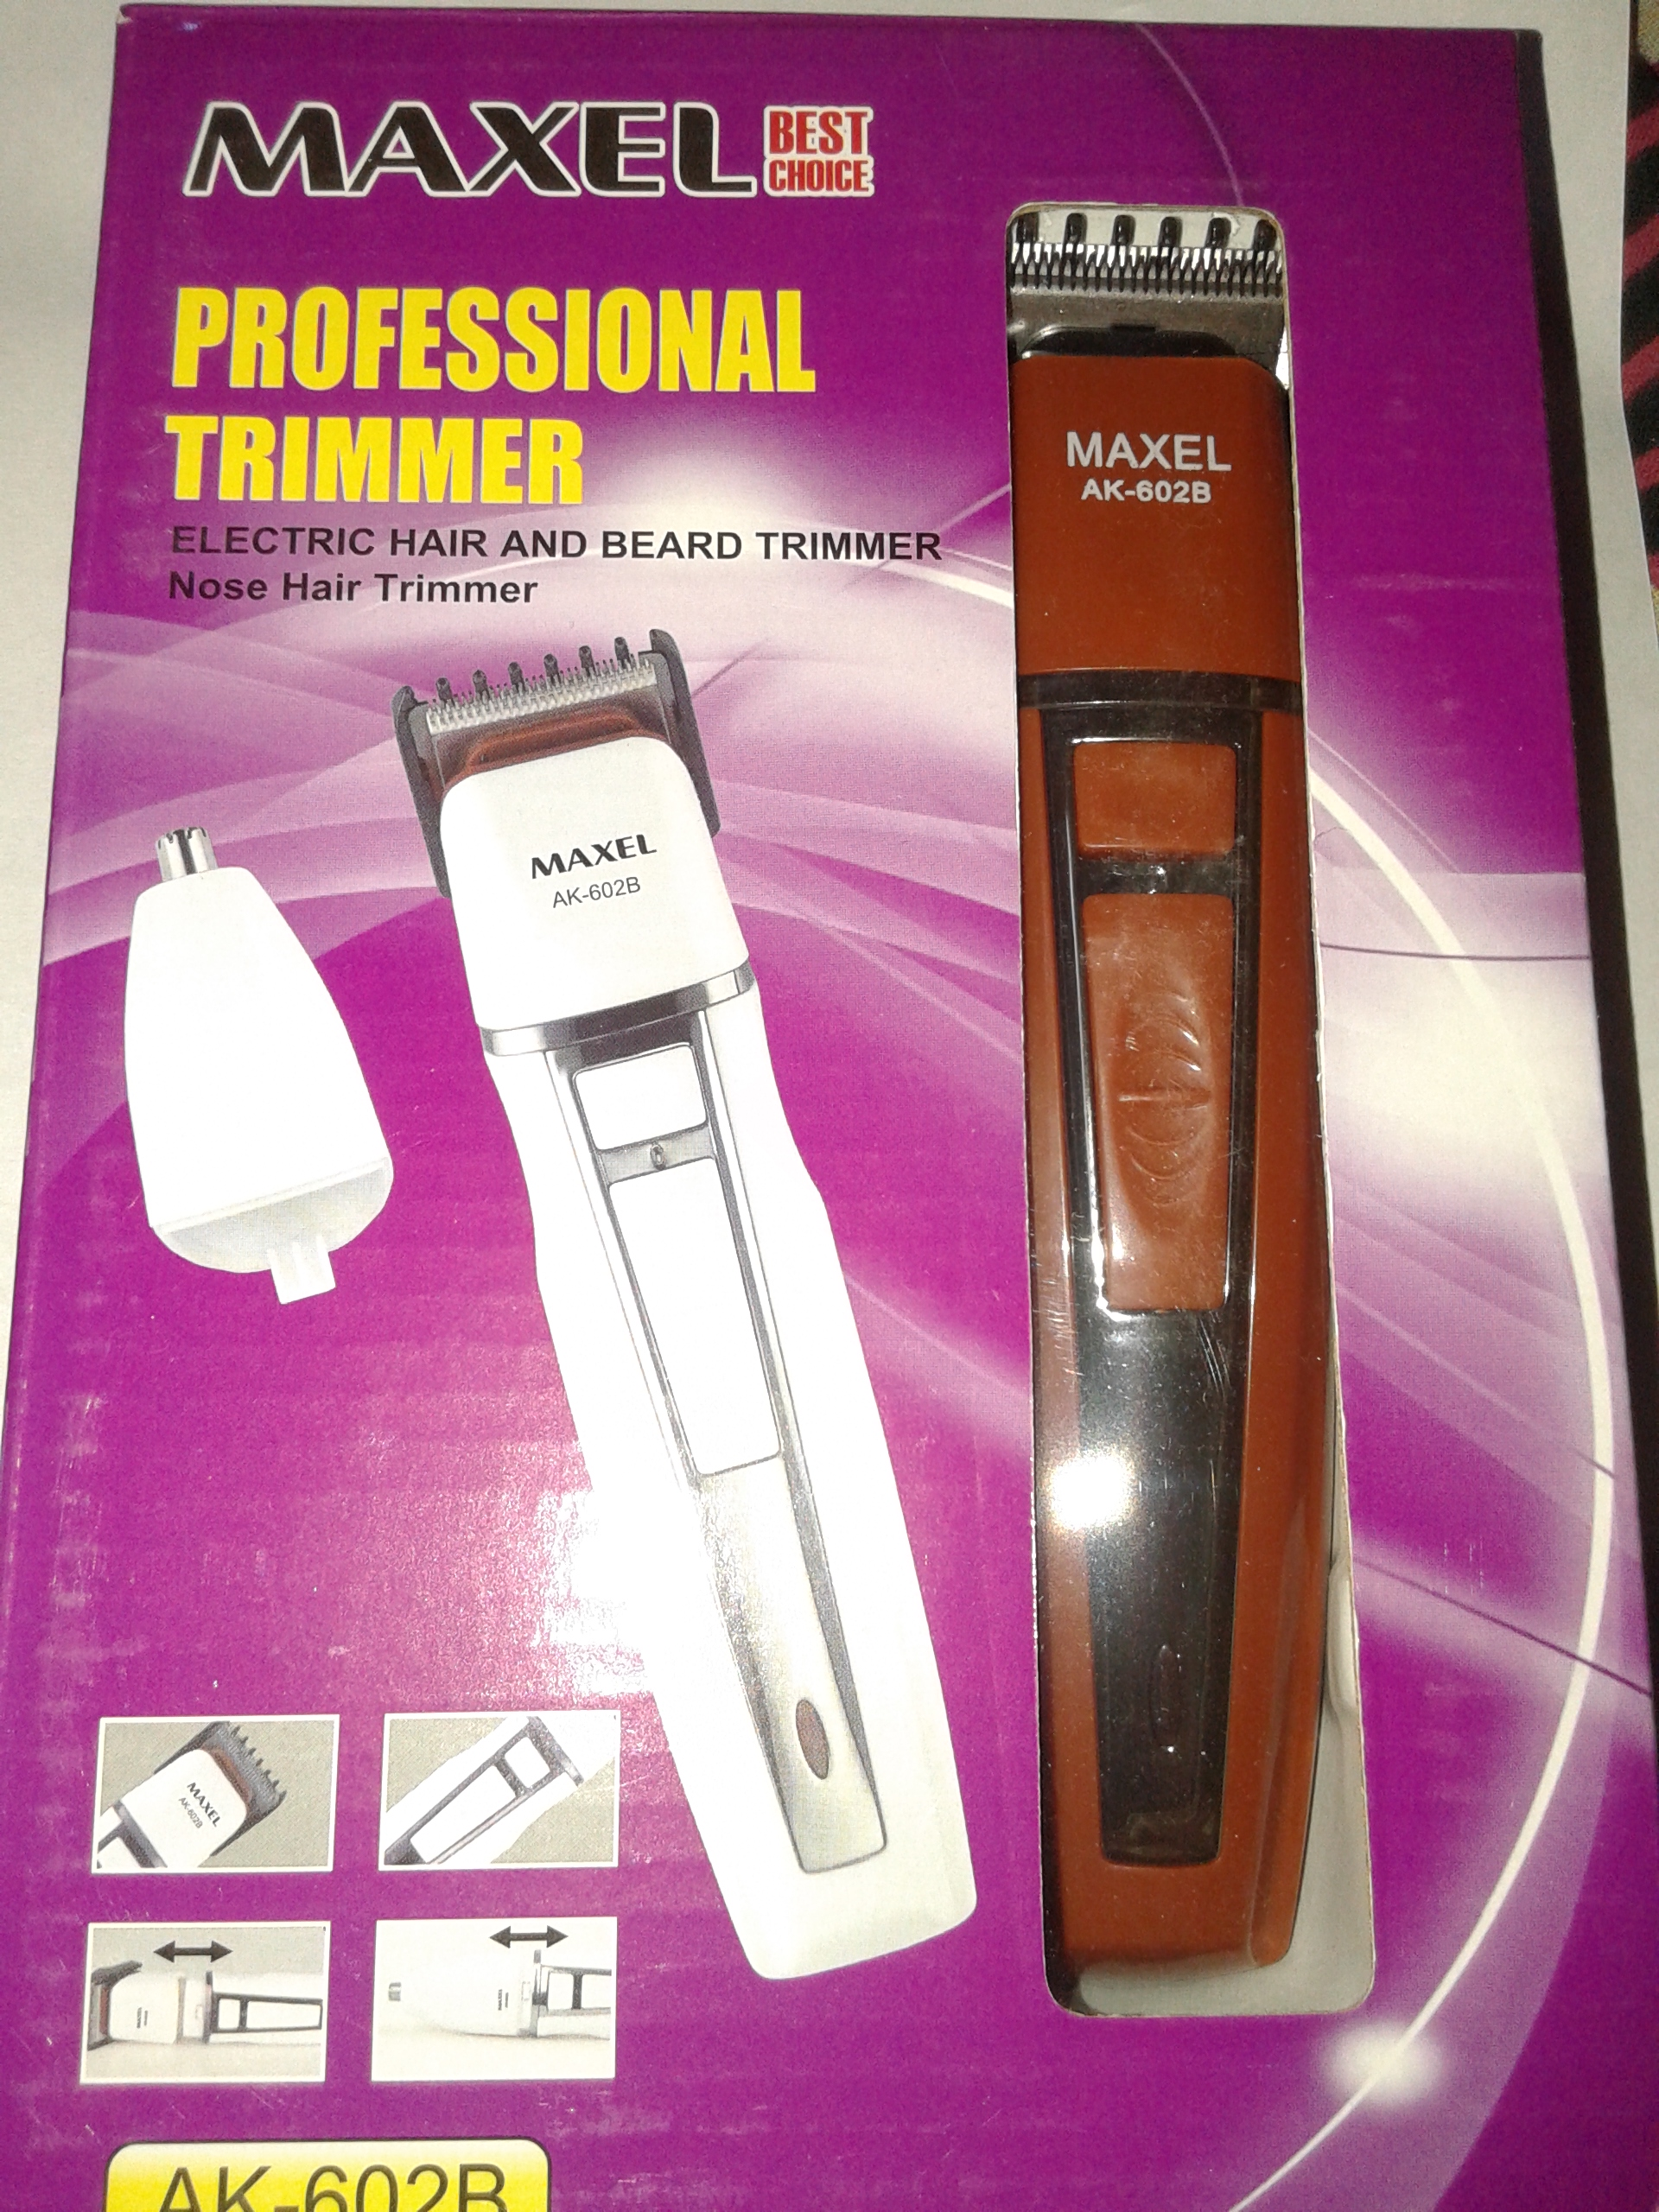 maxel 2 in 1 electric hair and beard trimmer nose hair trimmer. Black Bedroom Furniture Sets. Home Design Ideas